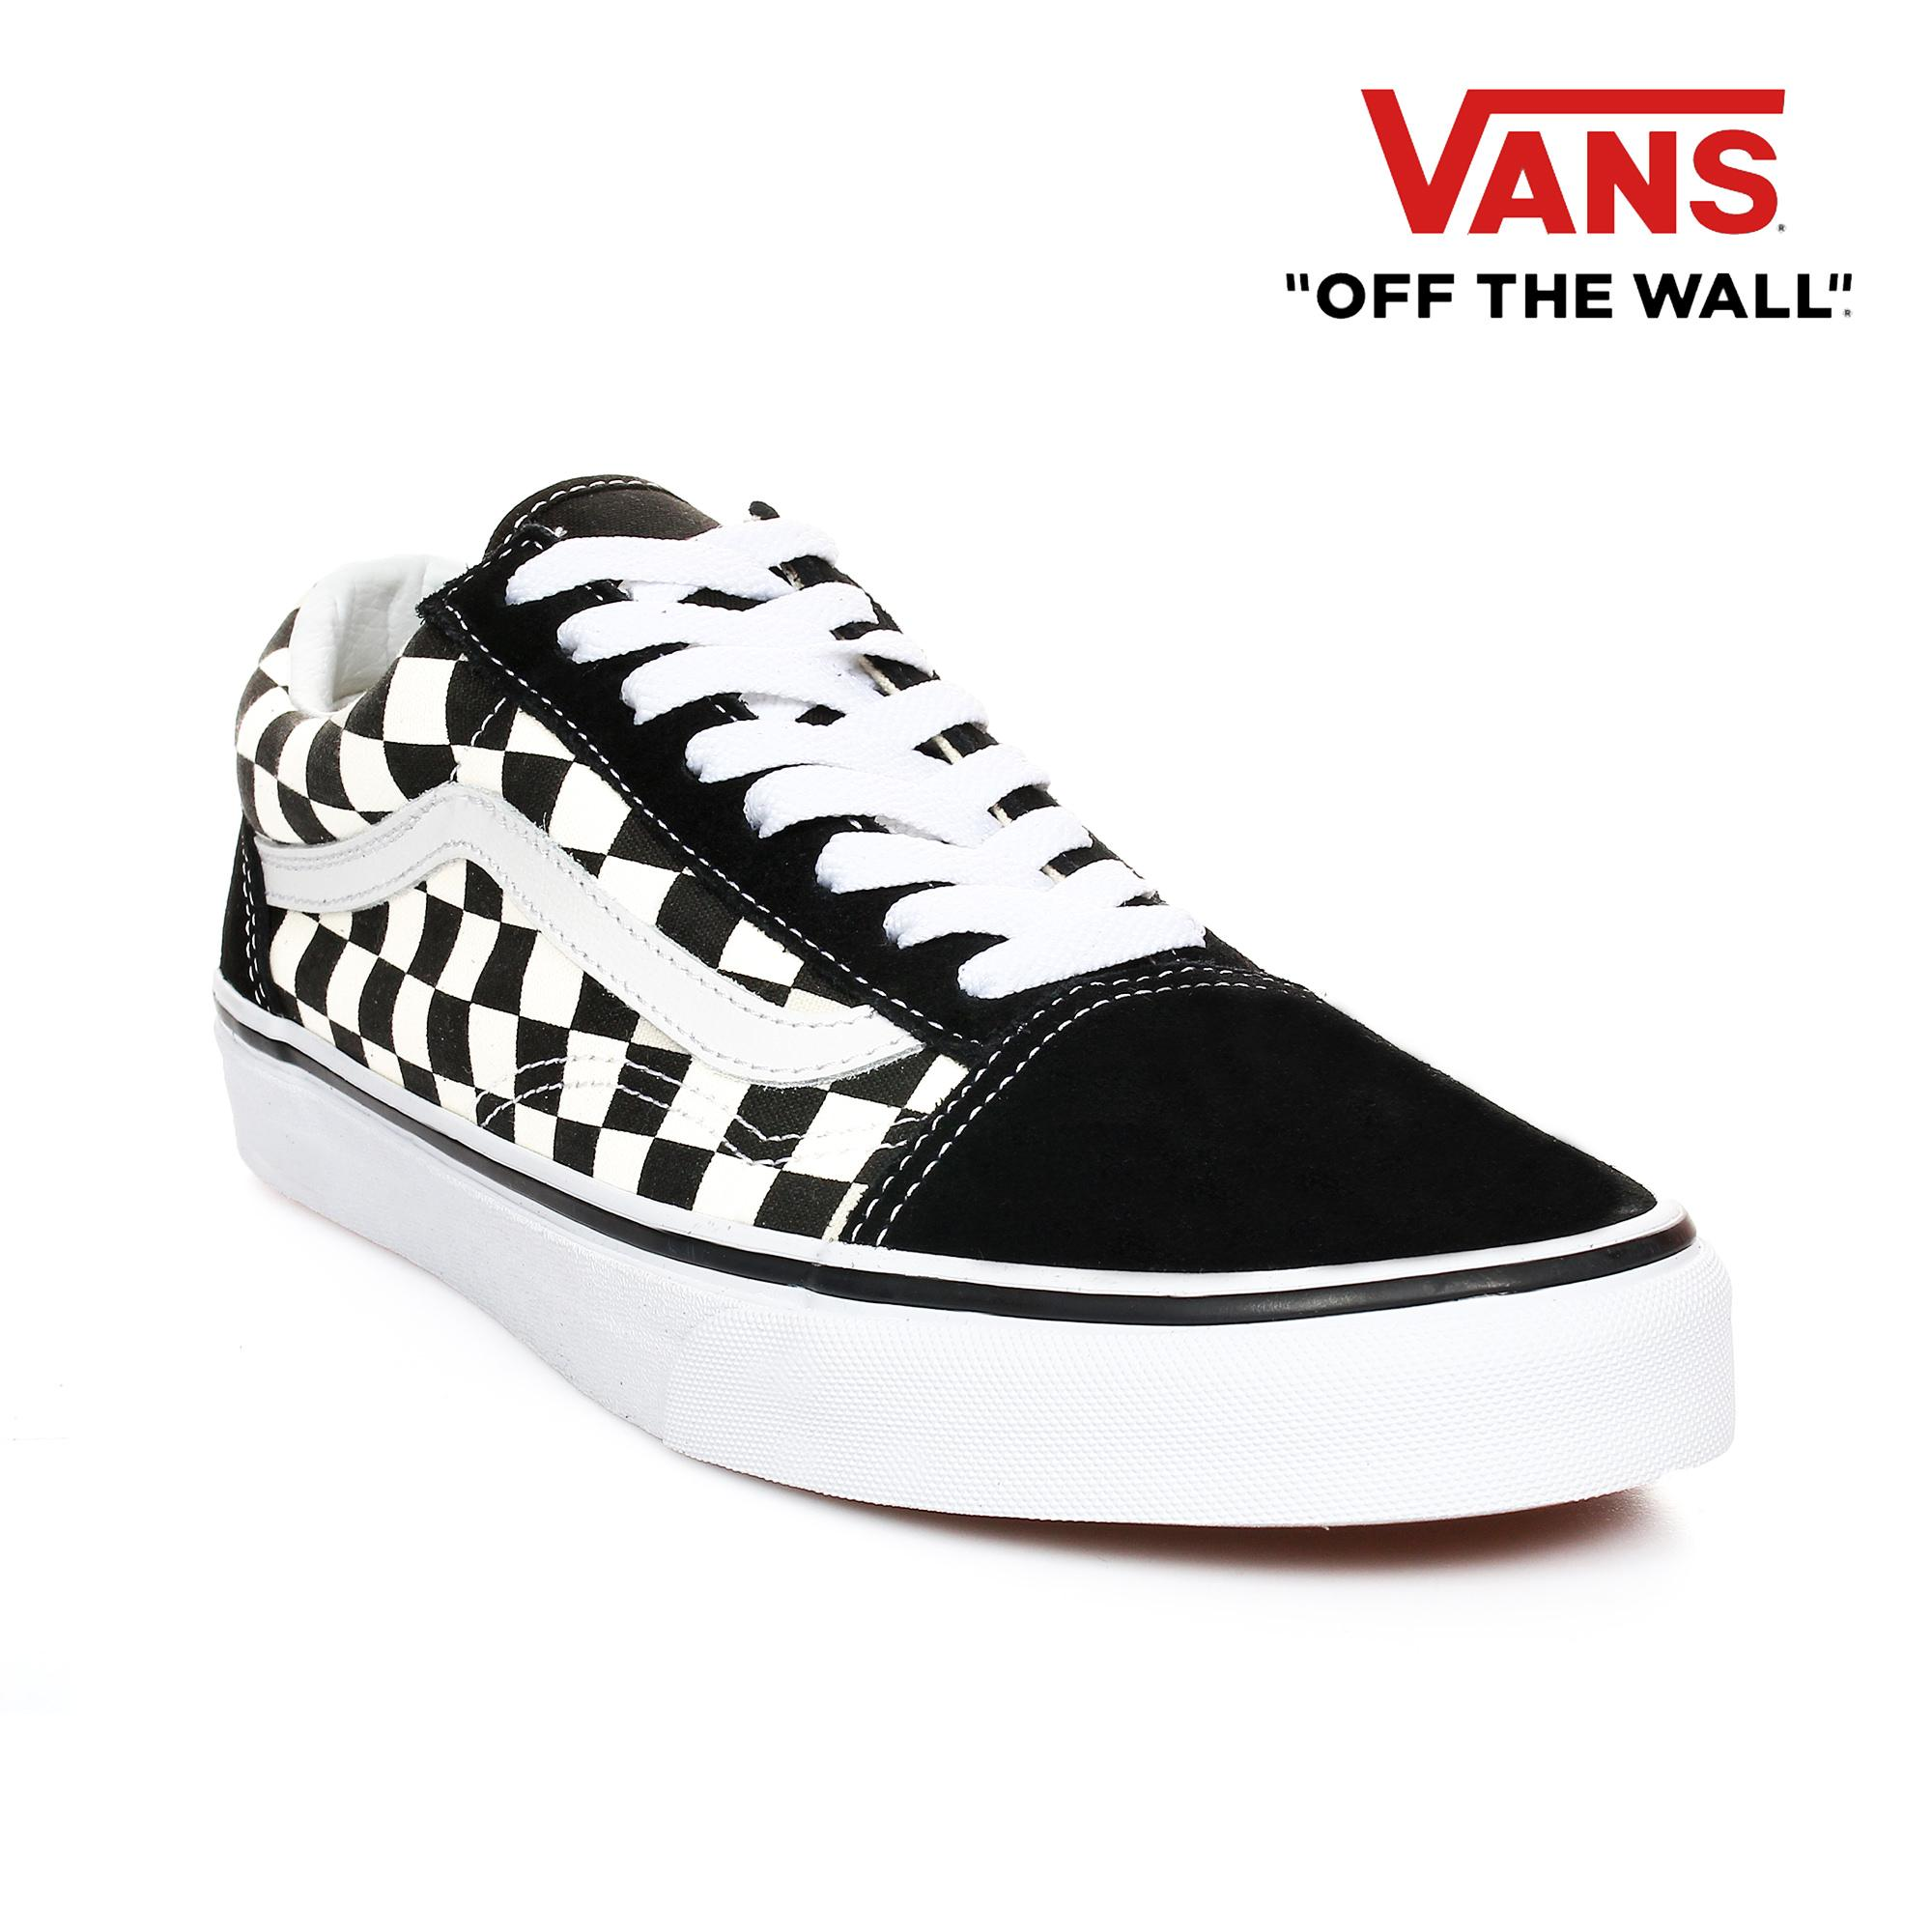 c52103426c Vans Philippines -Vans Mens Fashion for sale - prices   reviews